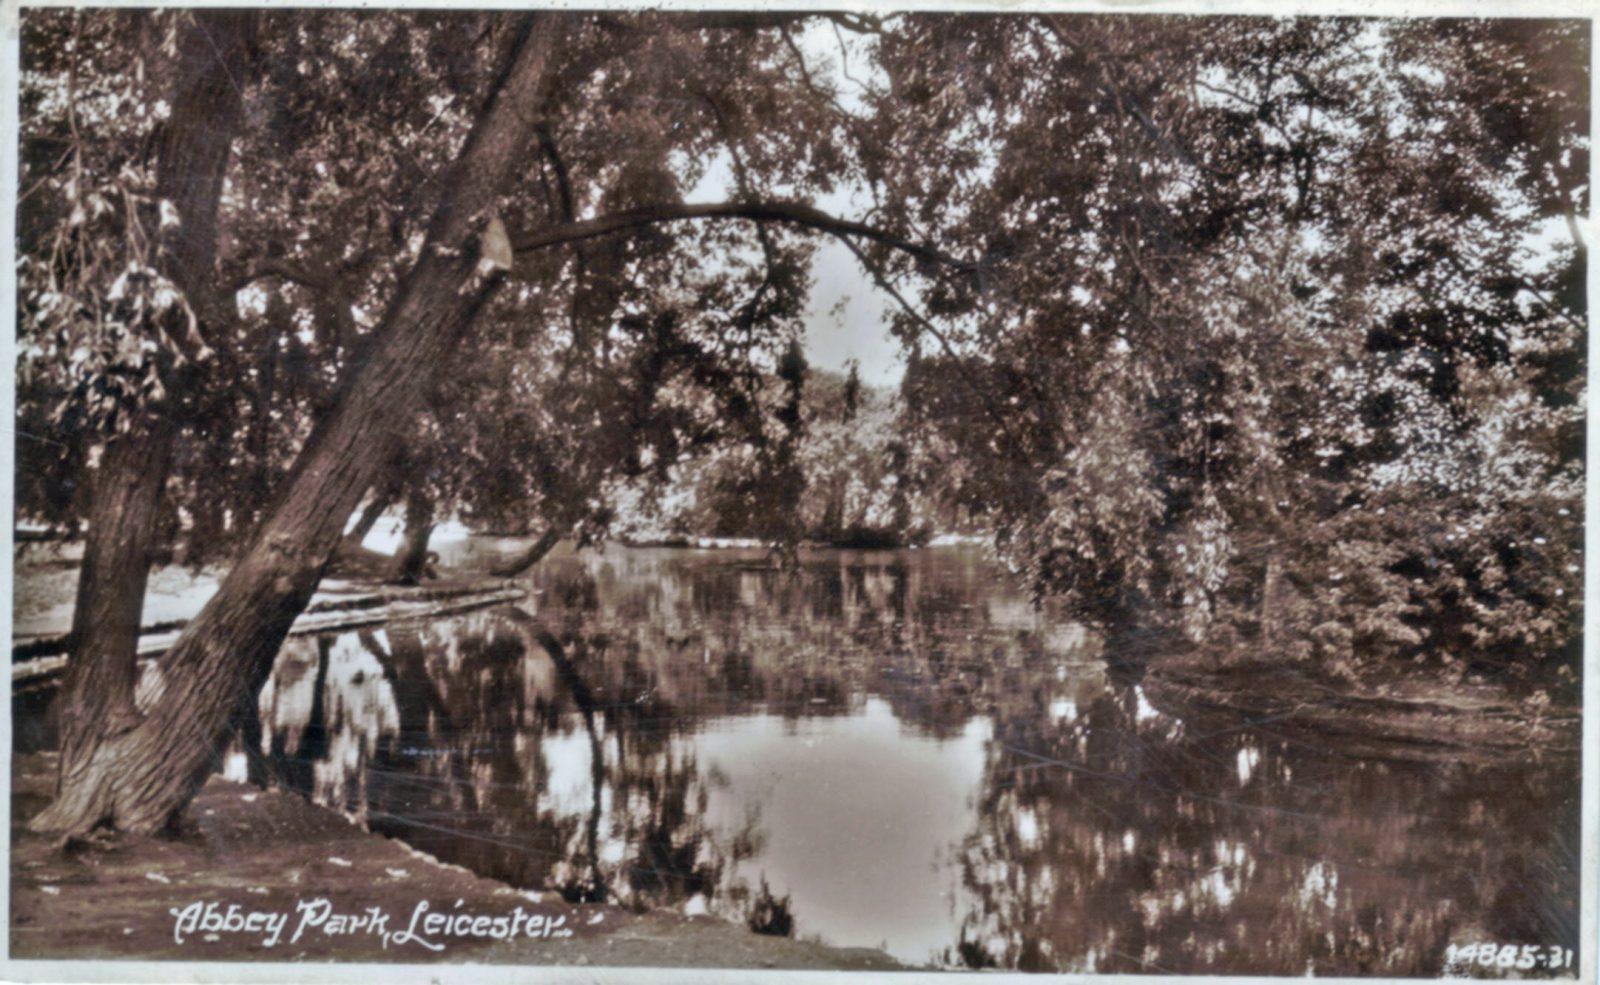 Abbey Park, Leicester. 1921-1940: The lake with trees. Franked 1935 (File:1033)